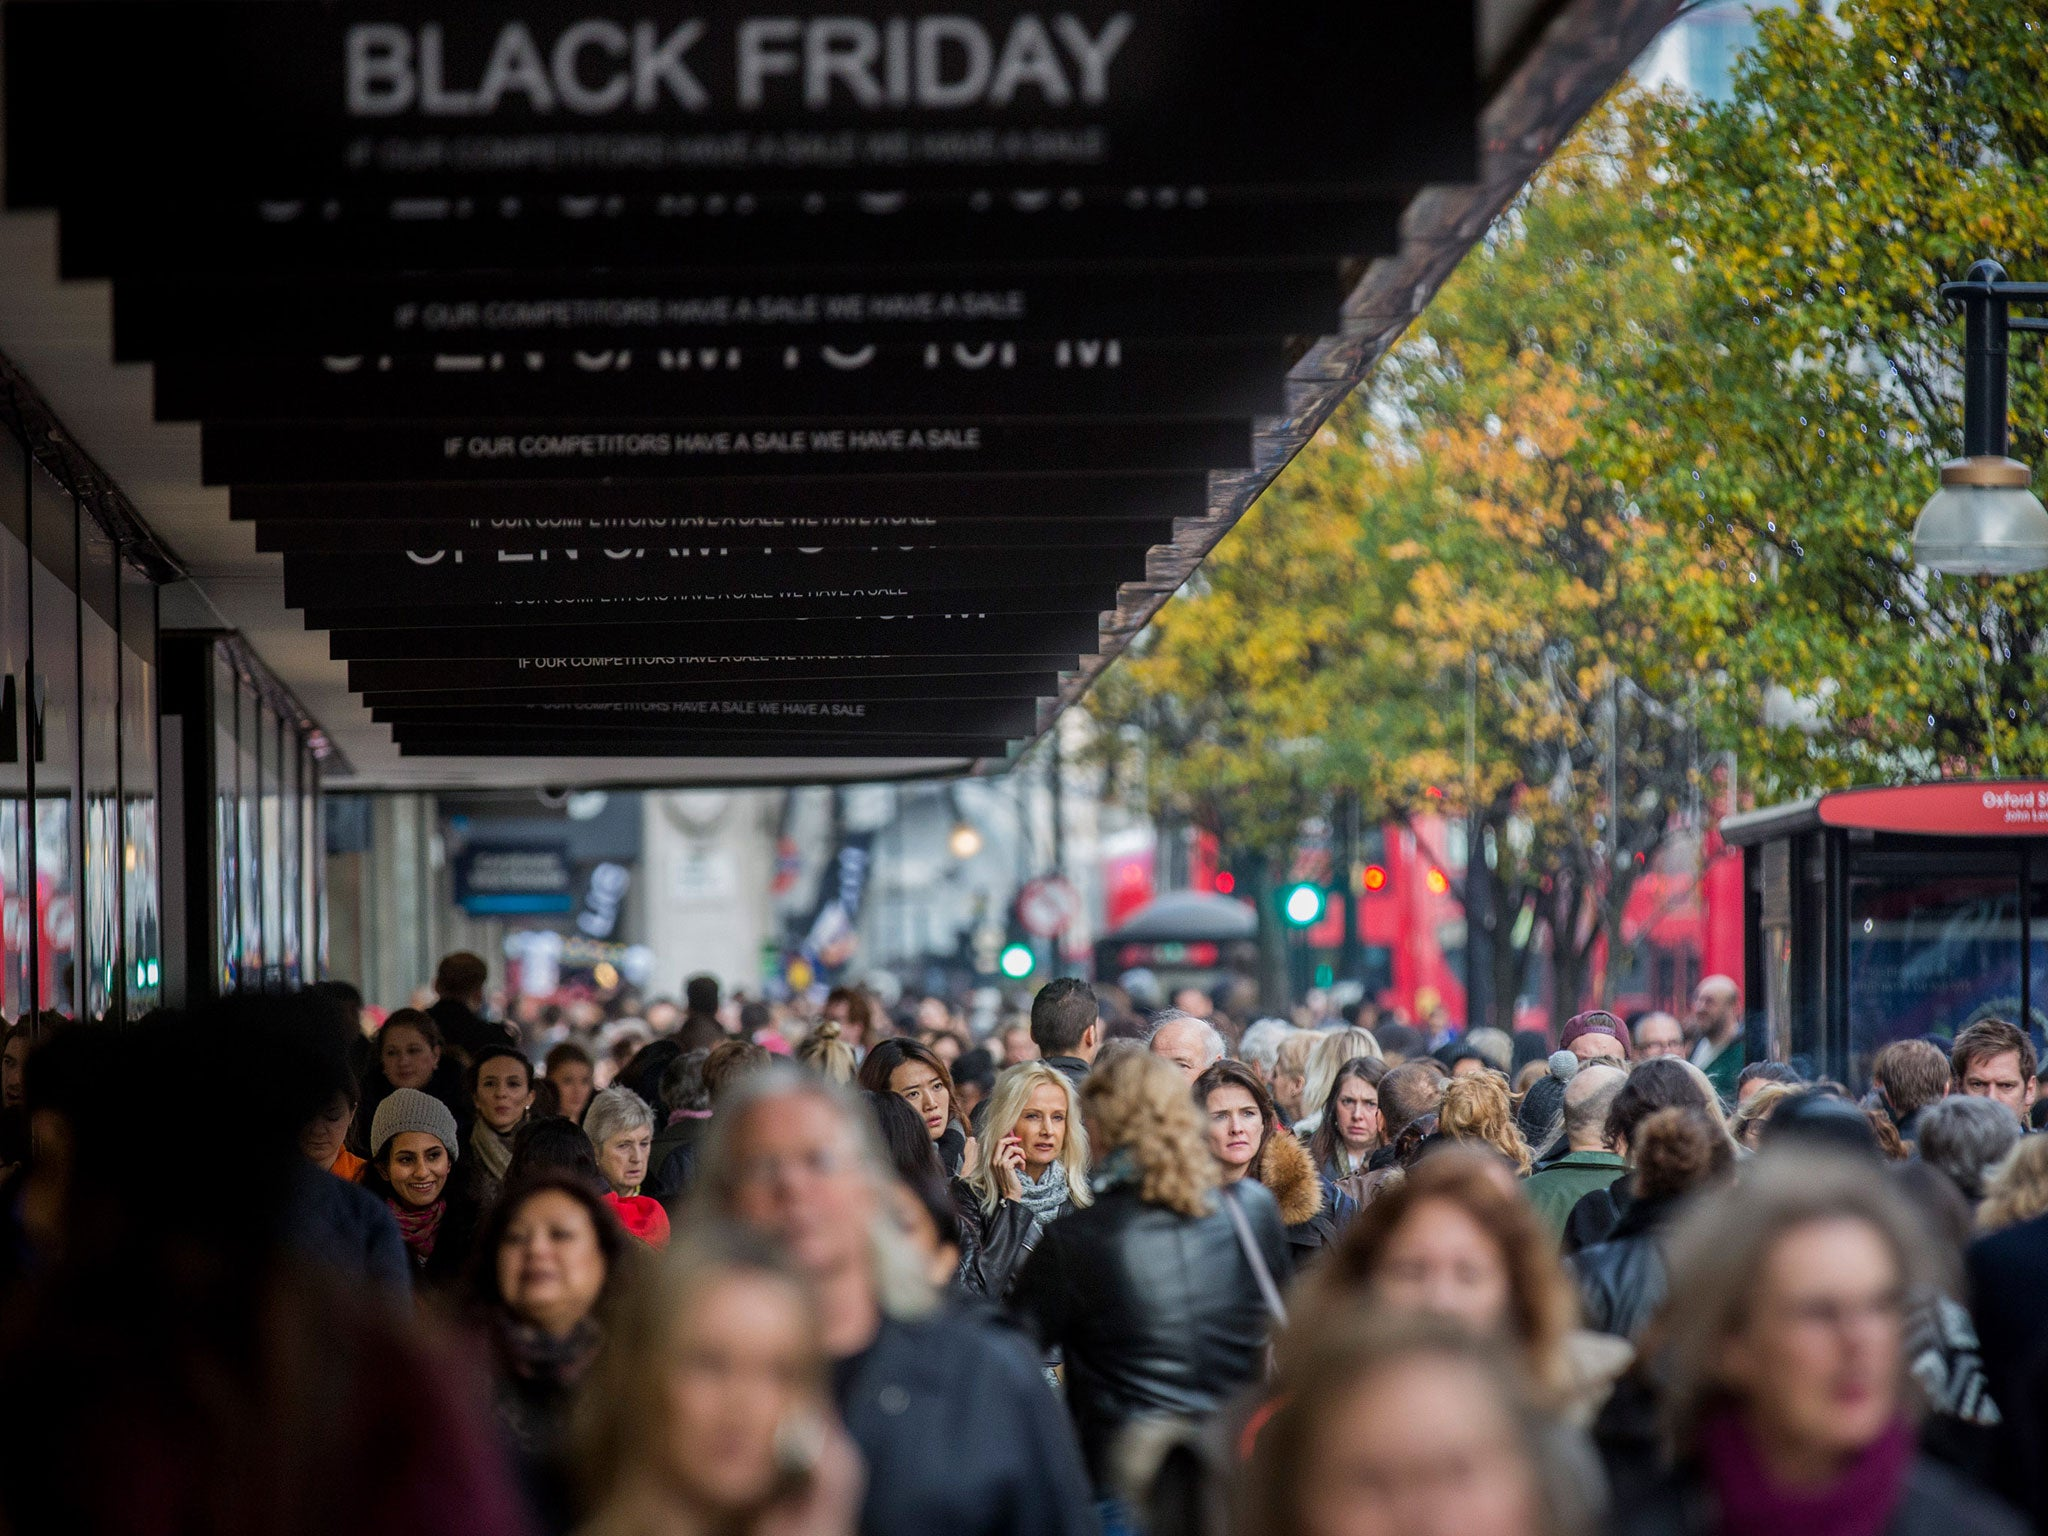 Black Friday 3 Reasons Why Asda S Ban Is A Good Idea And Other Shops Should Do The Same The Independent The Independent